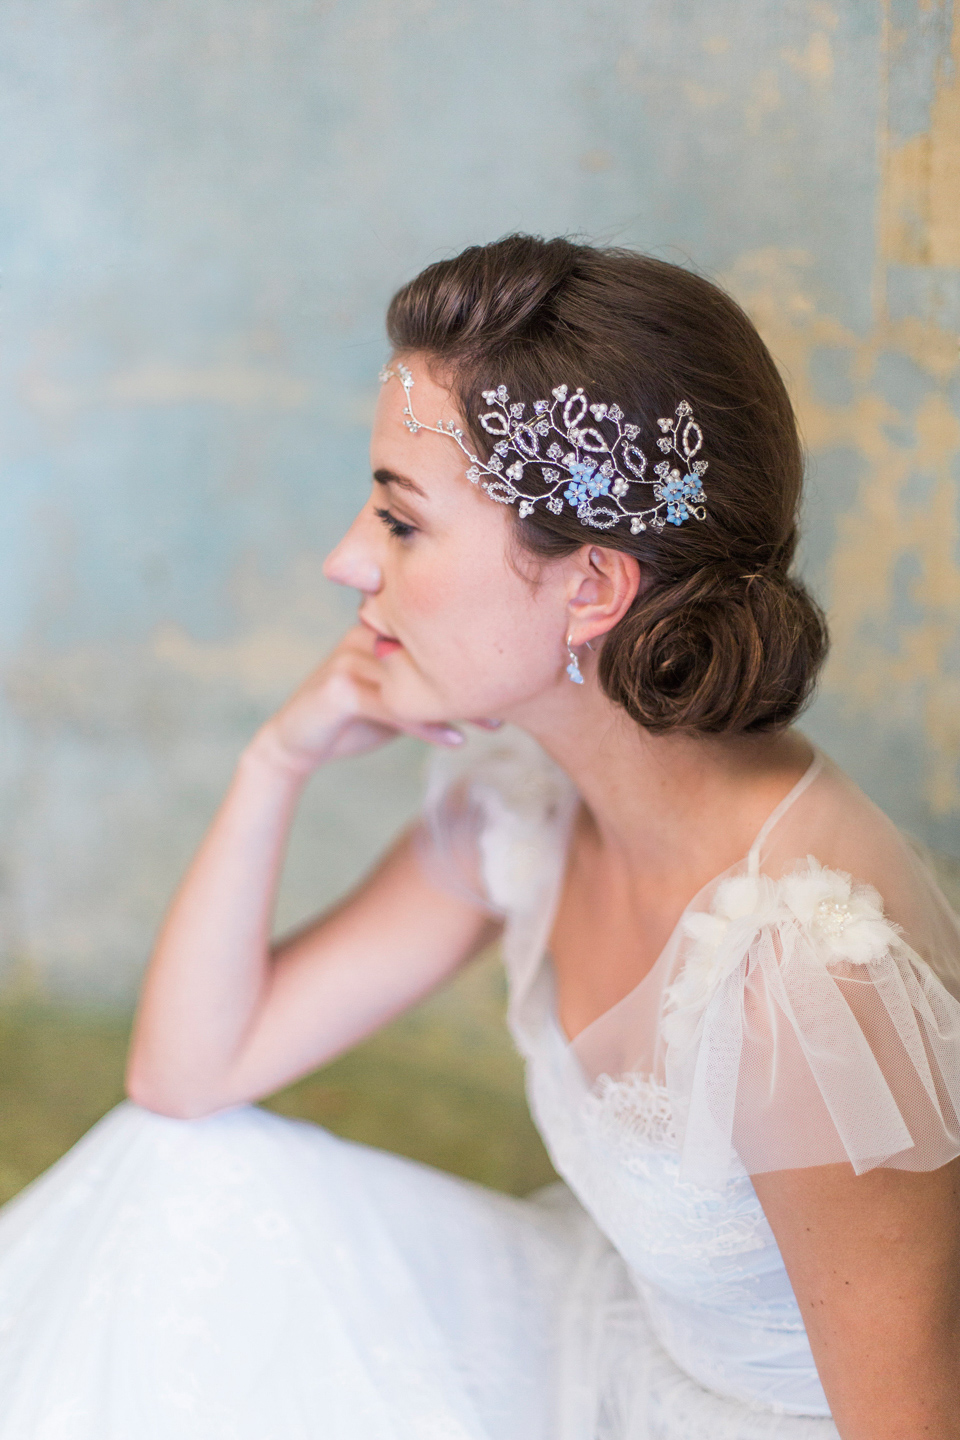 hermione harbutt: nature inspired hair vines and delicate bridal